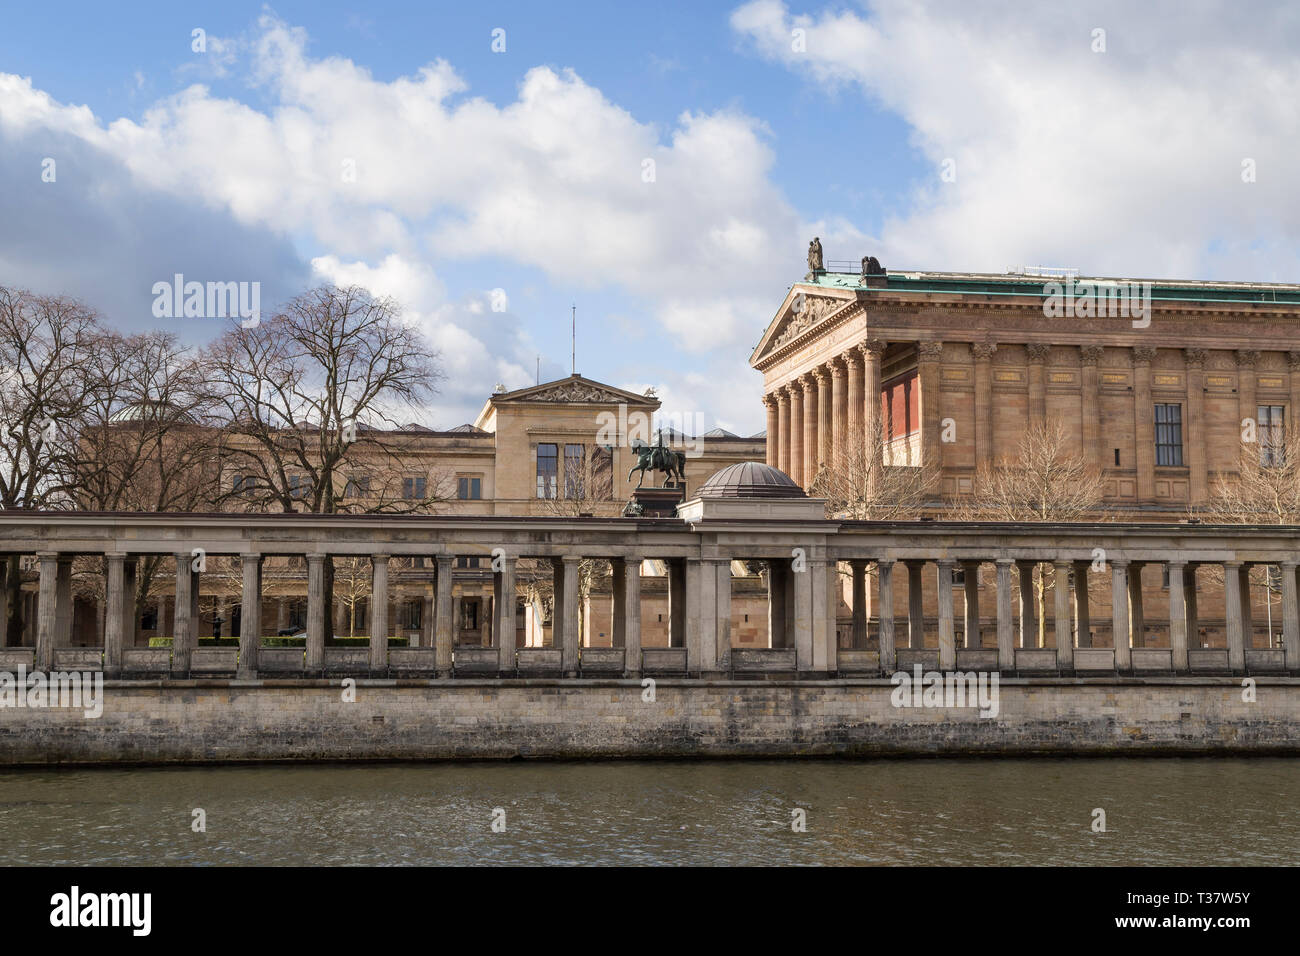 Alte Nationalgalerie and Neues Museum by the Spree River in Berlin, Germany, on a sunny day at early spring. Stock Photo